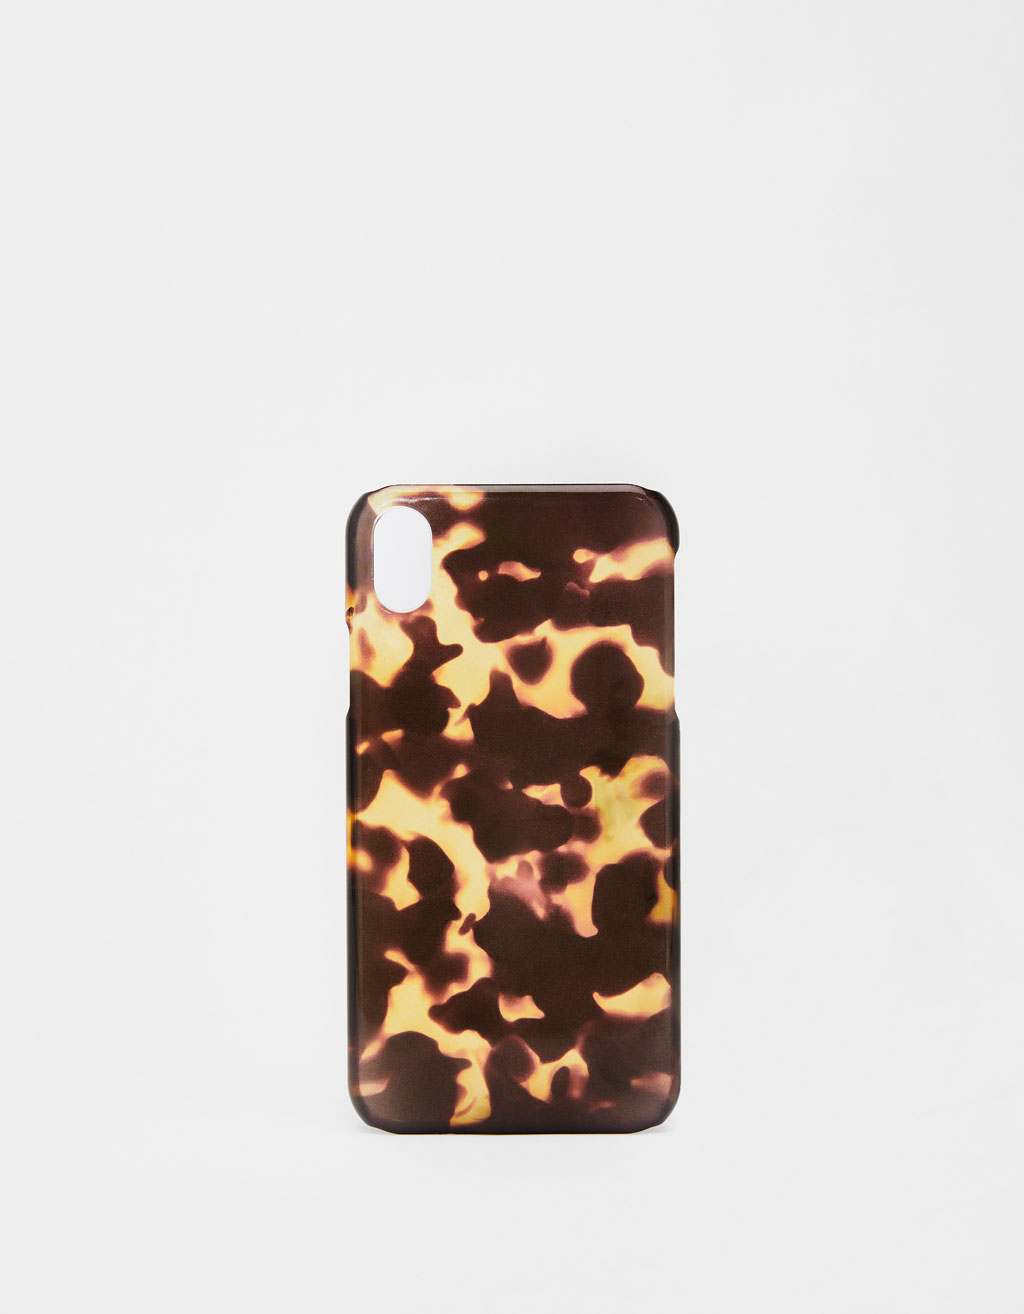 Tortoiseshell-effect iPhone XR case